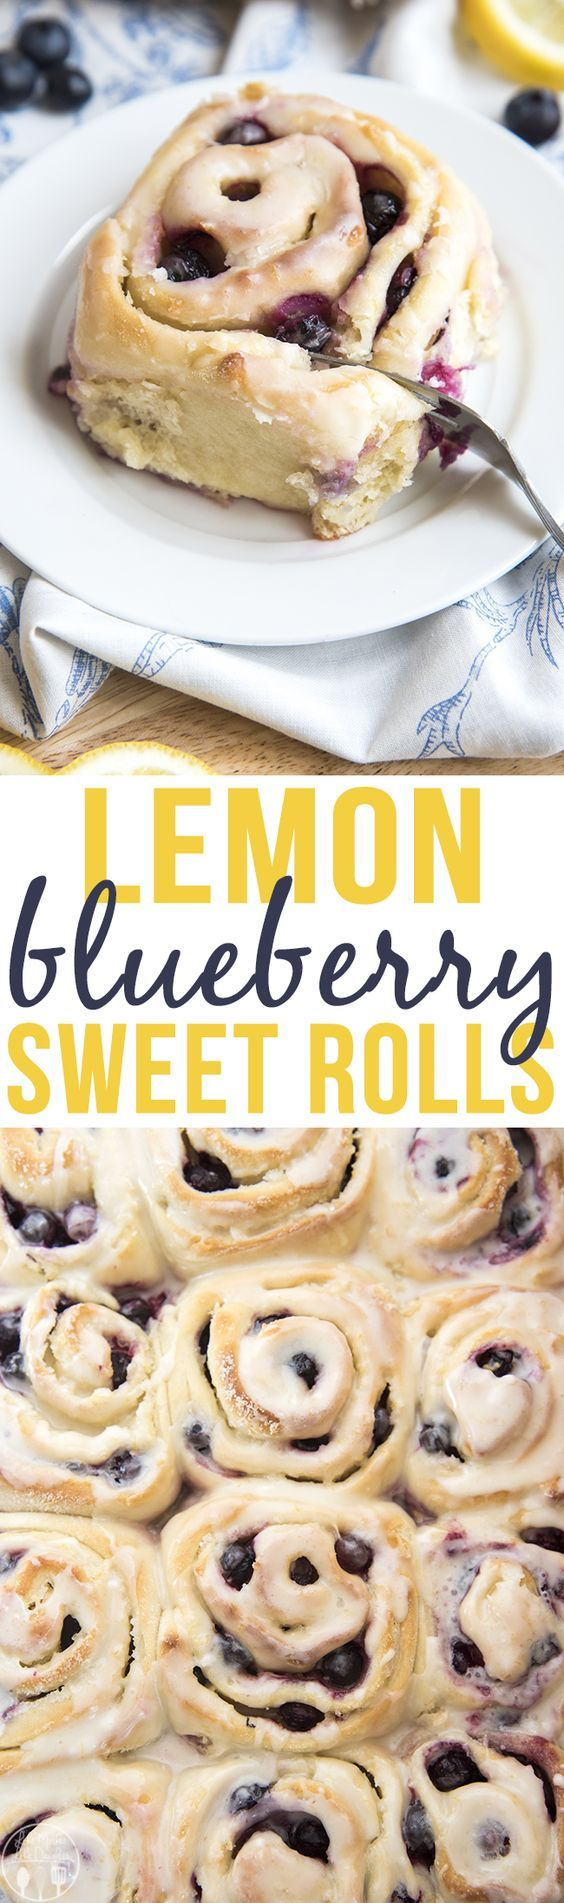 Lemon Blueberry Sweet Rolls - These lemon blueberry sweet rolls are perfectly soft and fluffy rolls bursting full of juicy blueberries, lemon sugar and topped with a tangy lemon glaze. These rolls are IRRESISTIBLE!